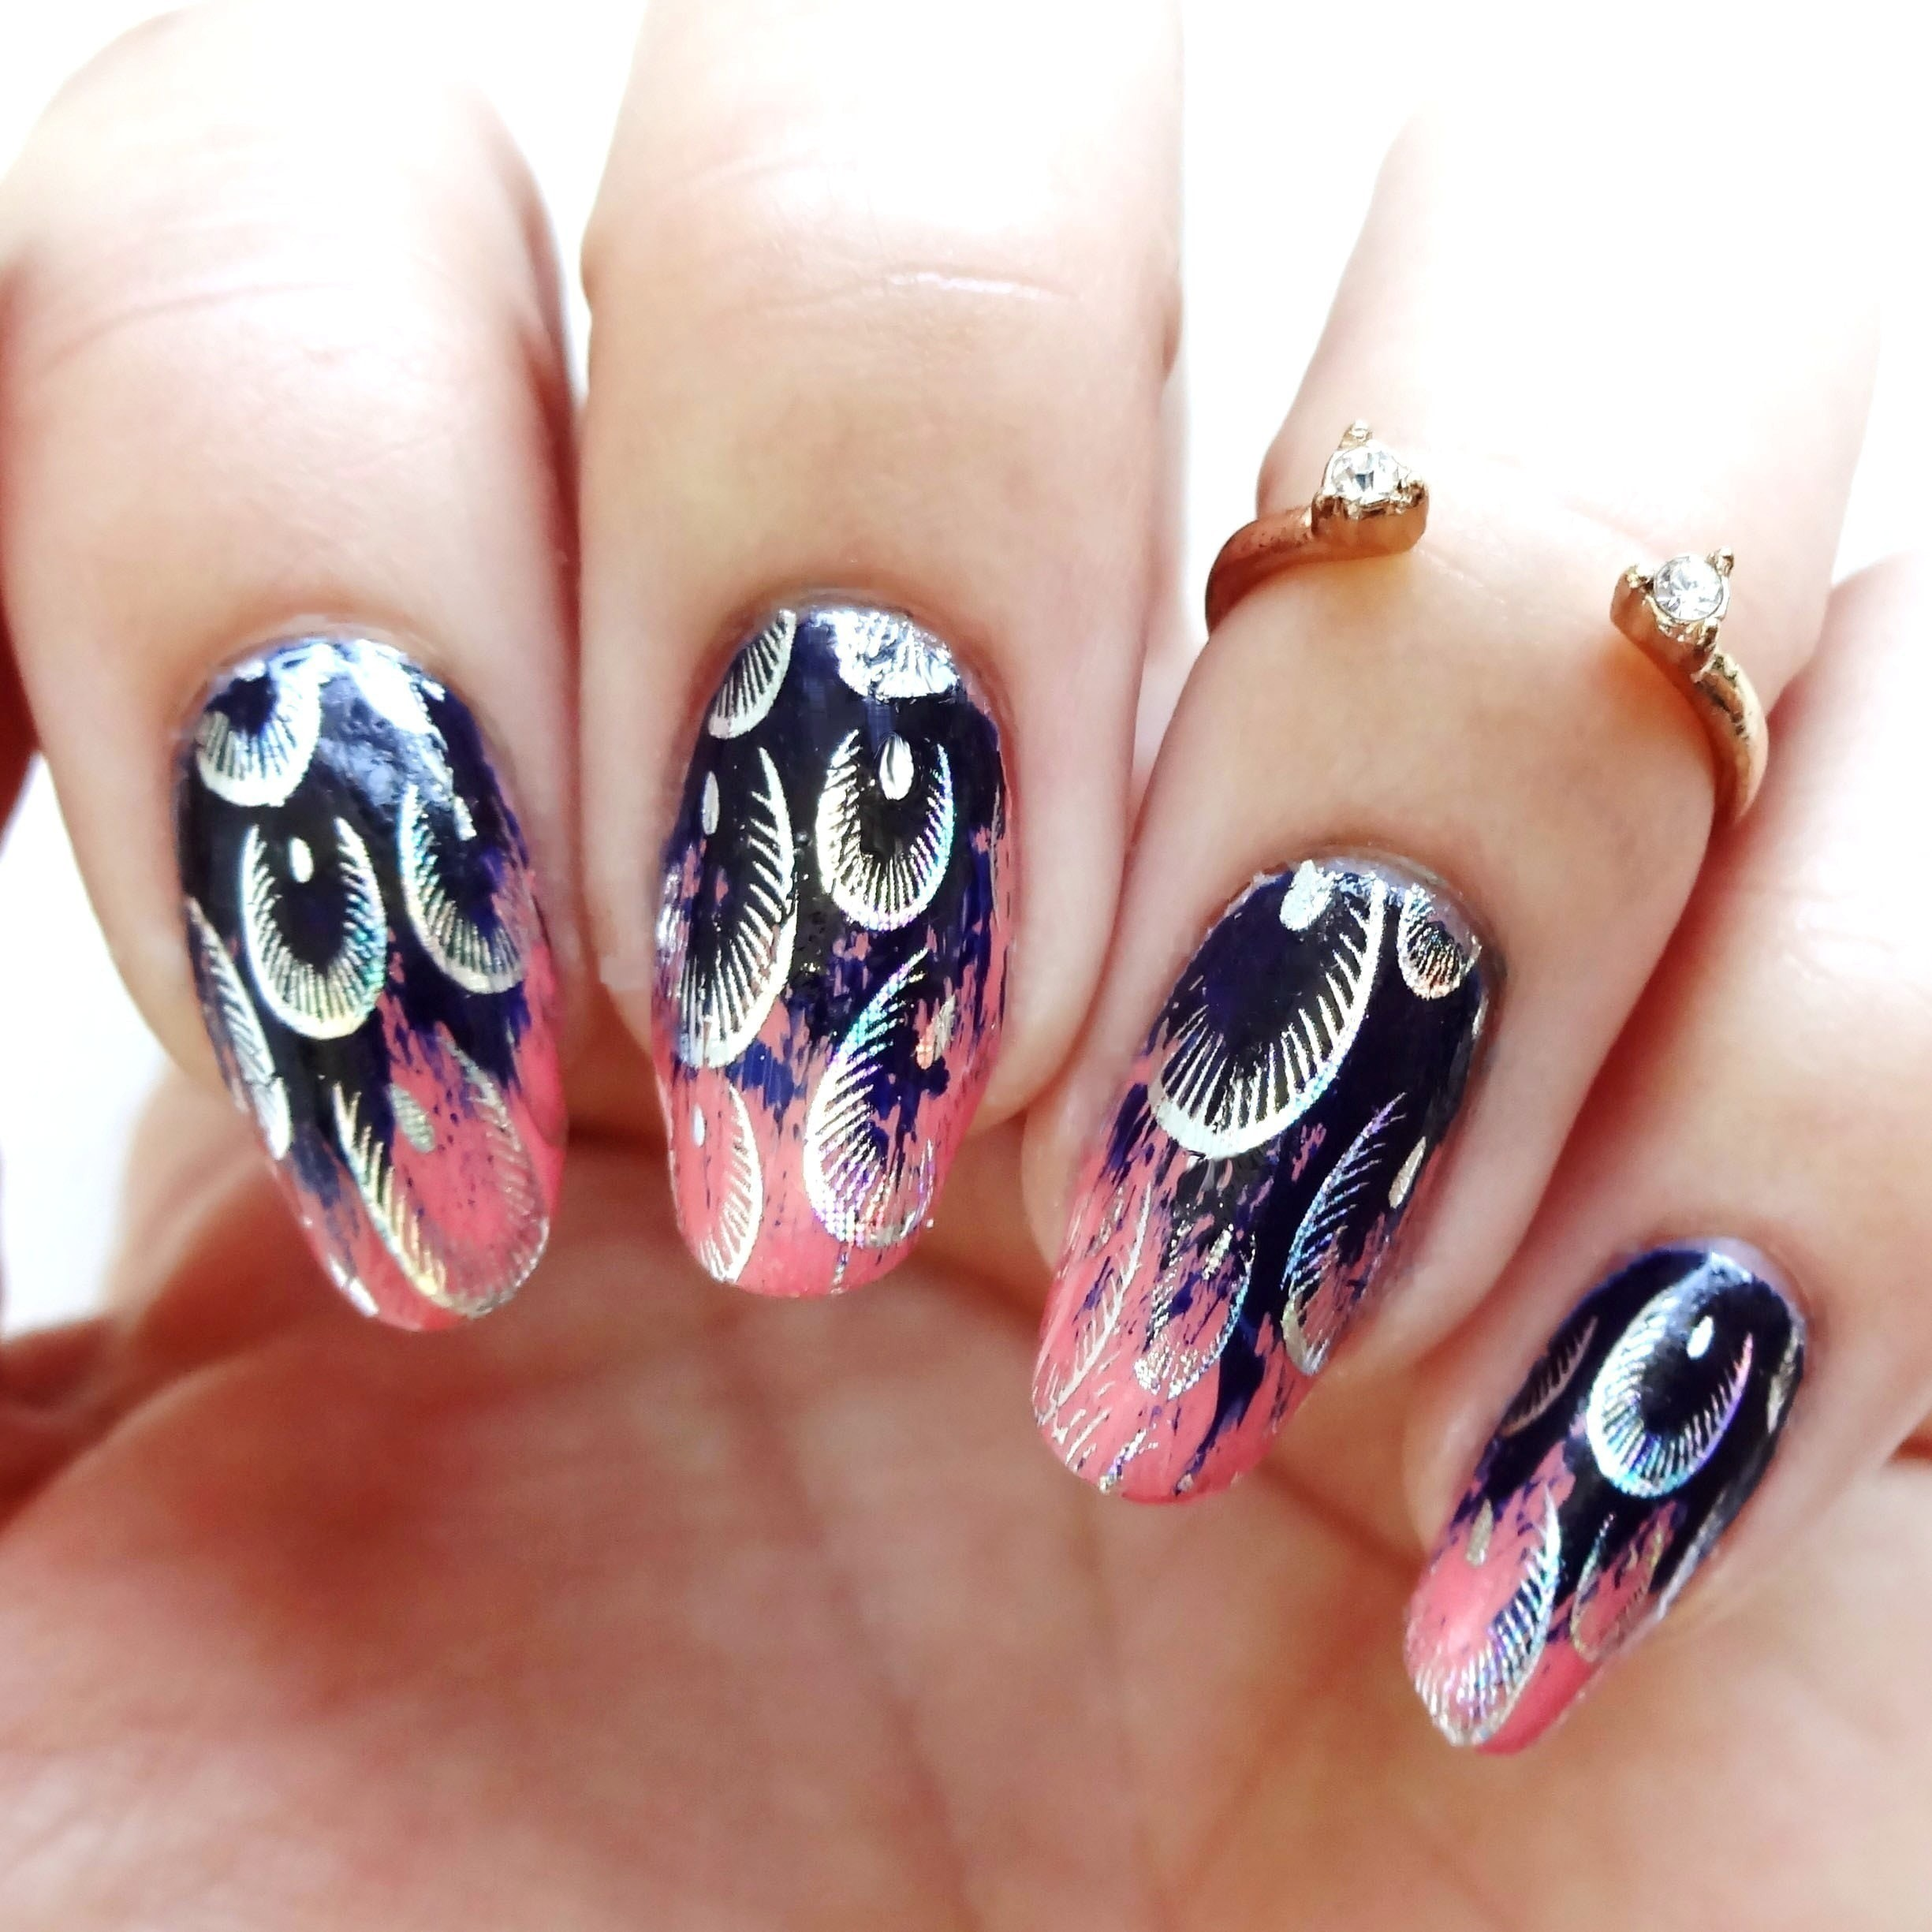 Feathered Flair · How To Paint An Animal Print Nail · Beauty on Cut ...